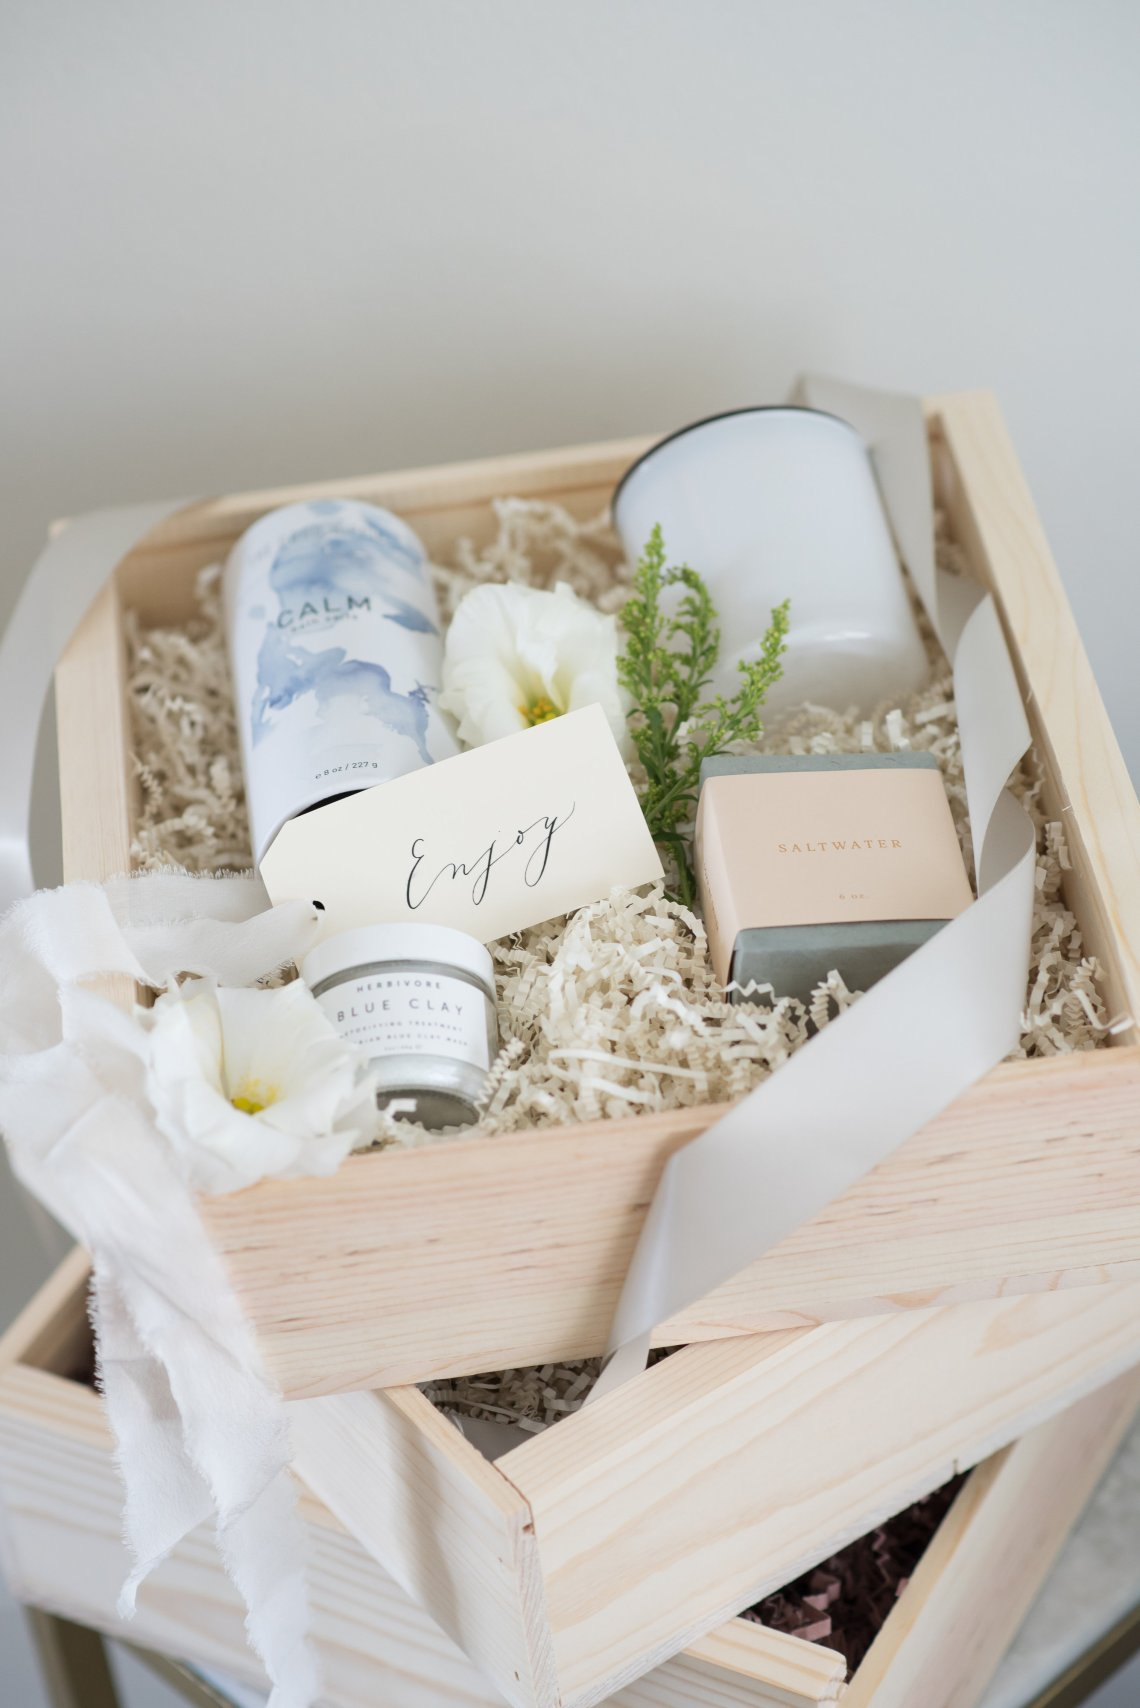 Curated gift boxes, perfect for every occasion. #giftingforgood #weddinggiftideas